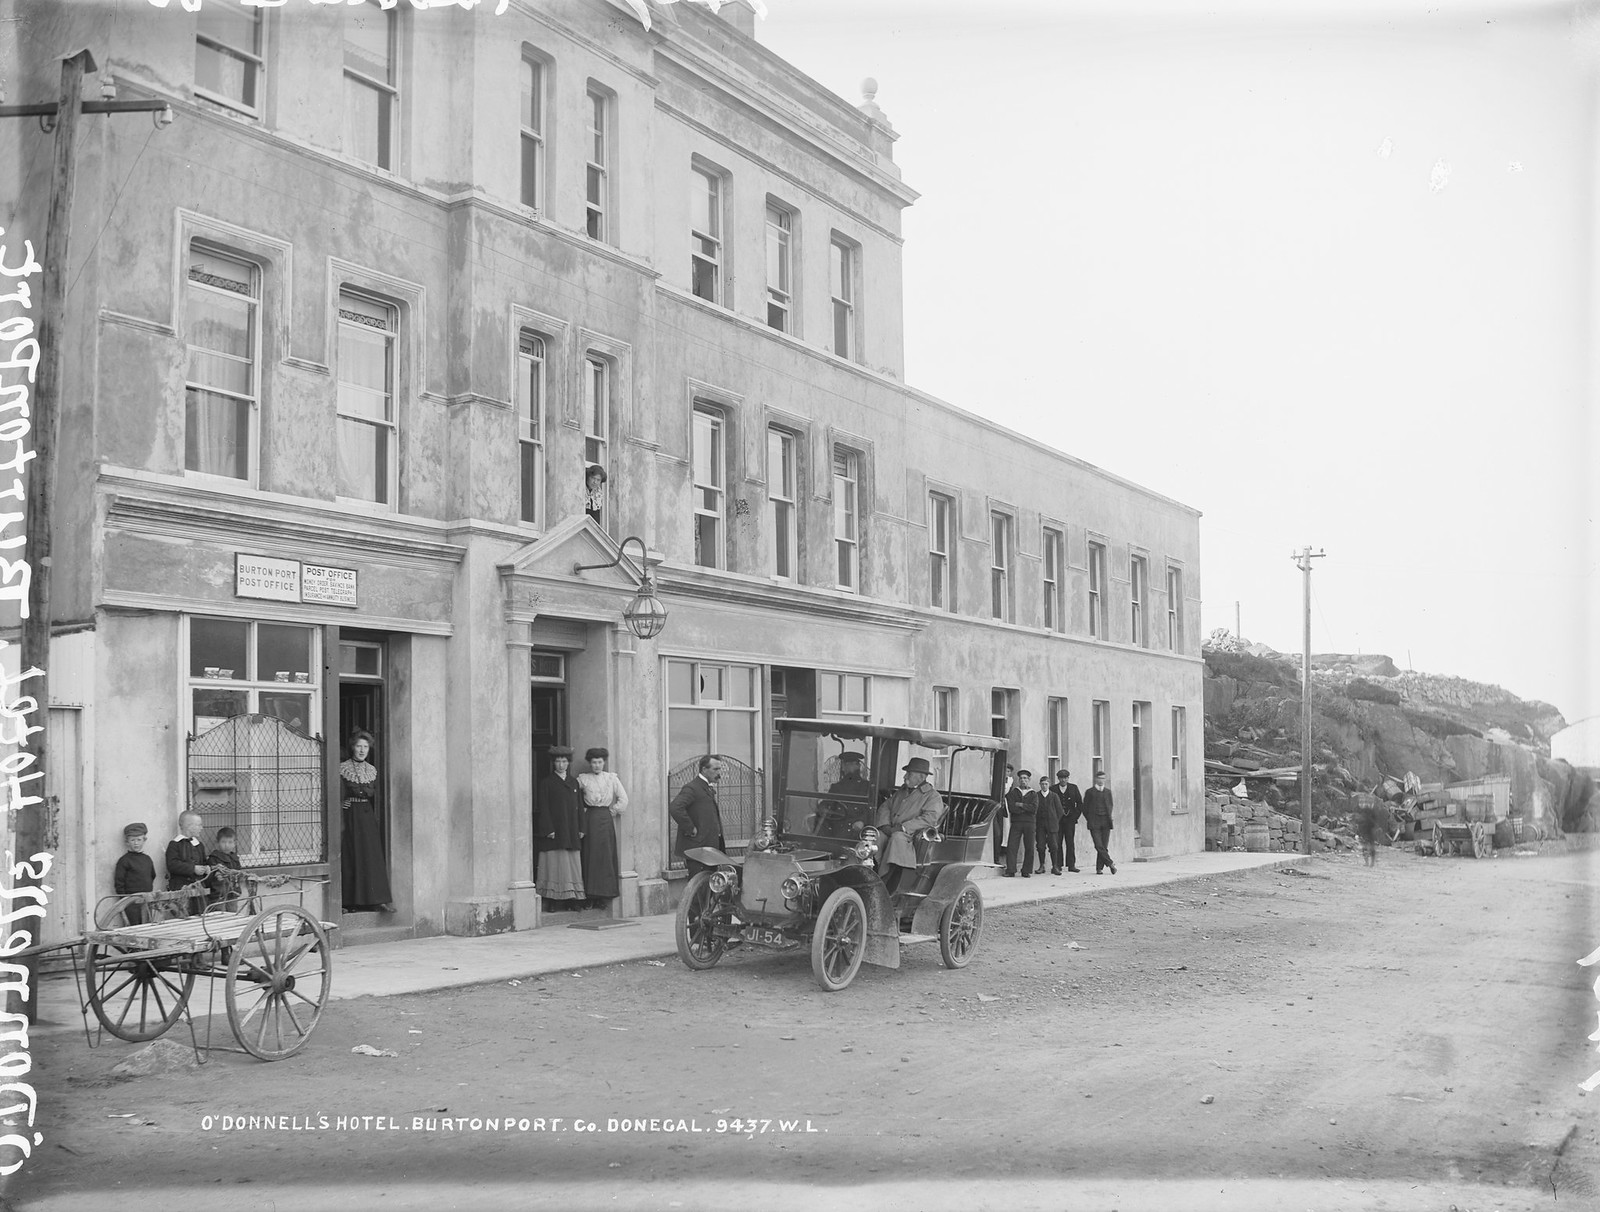 Old photo of O'Donnell's Hotel, Burtonport, Donegal, Ireland